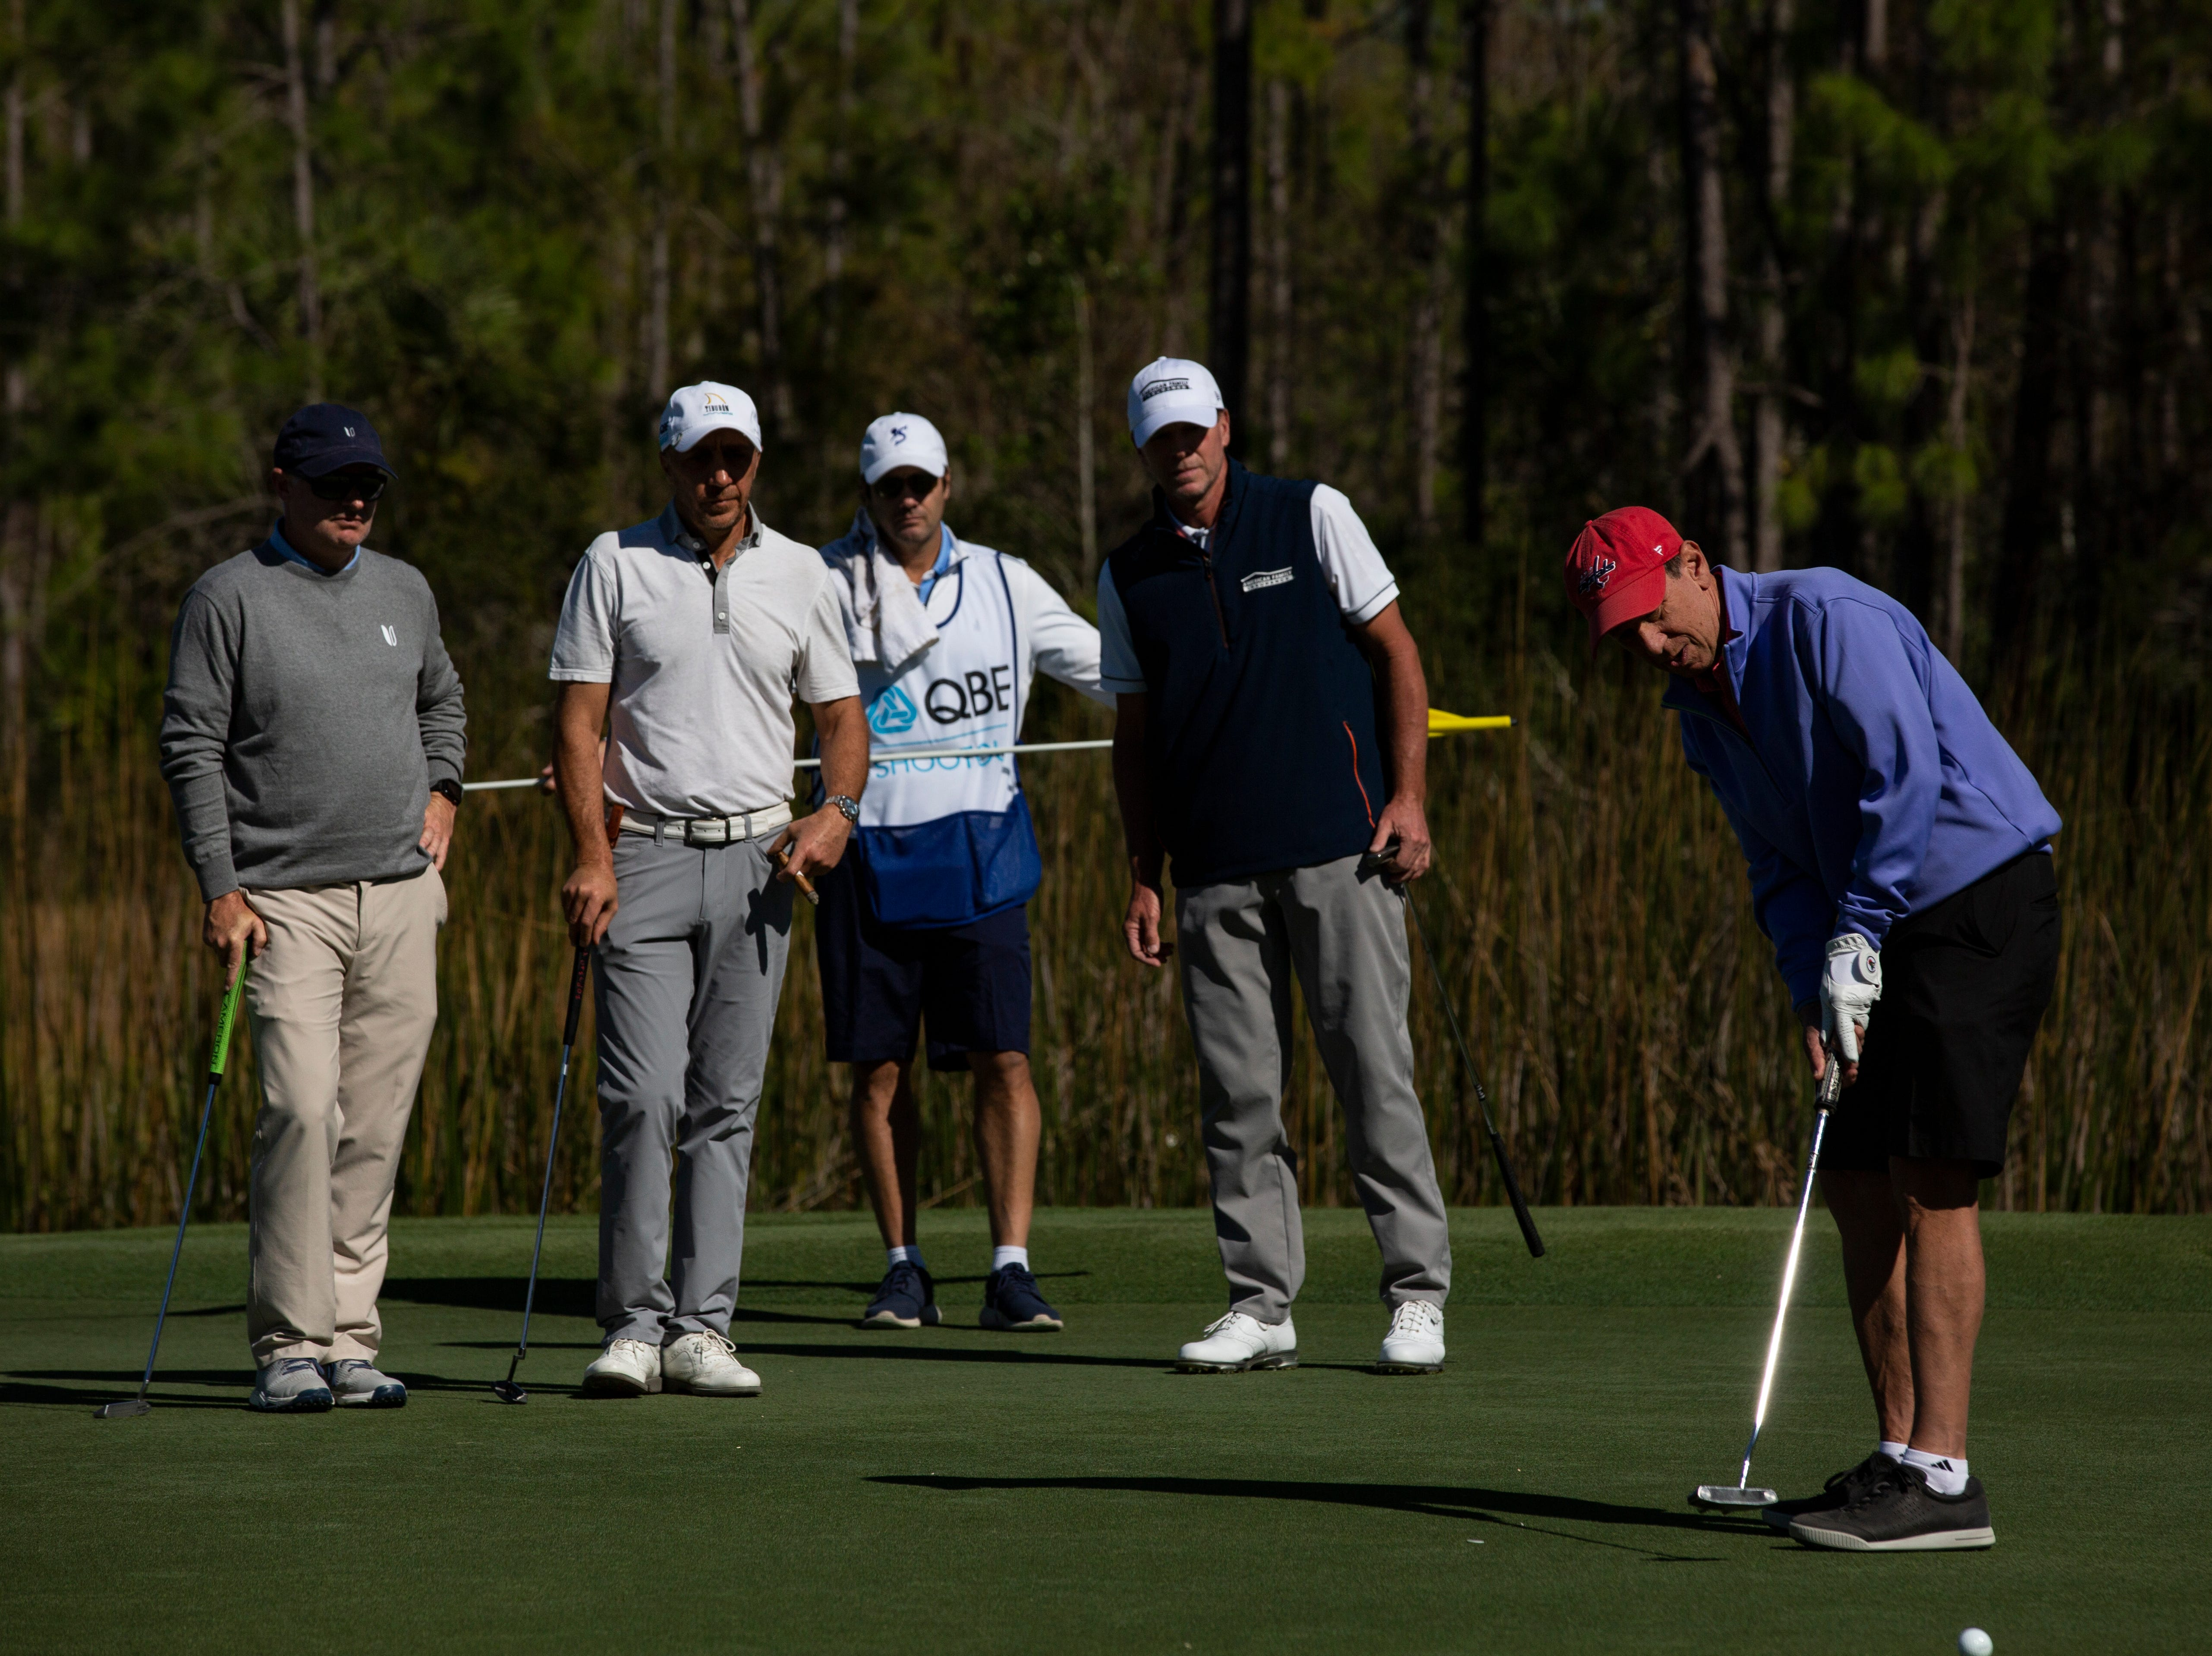 Neil Cohen putts the ball while his group consisting of Steve Stricker (right) watches Cohen patiently during the 30th annual QBE Shootout Pro - Amateur round two, on Thursday, Dec. 6, 2018, at Tiburón Golf Club in Naples.